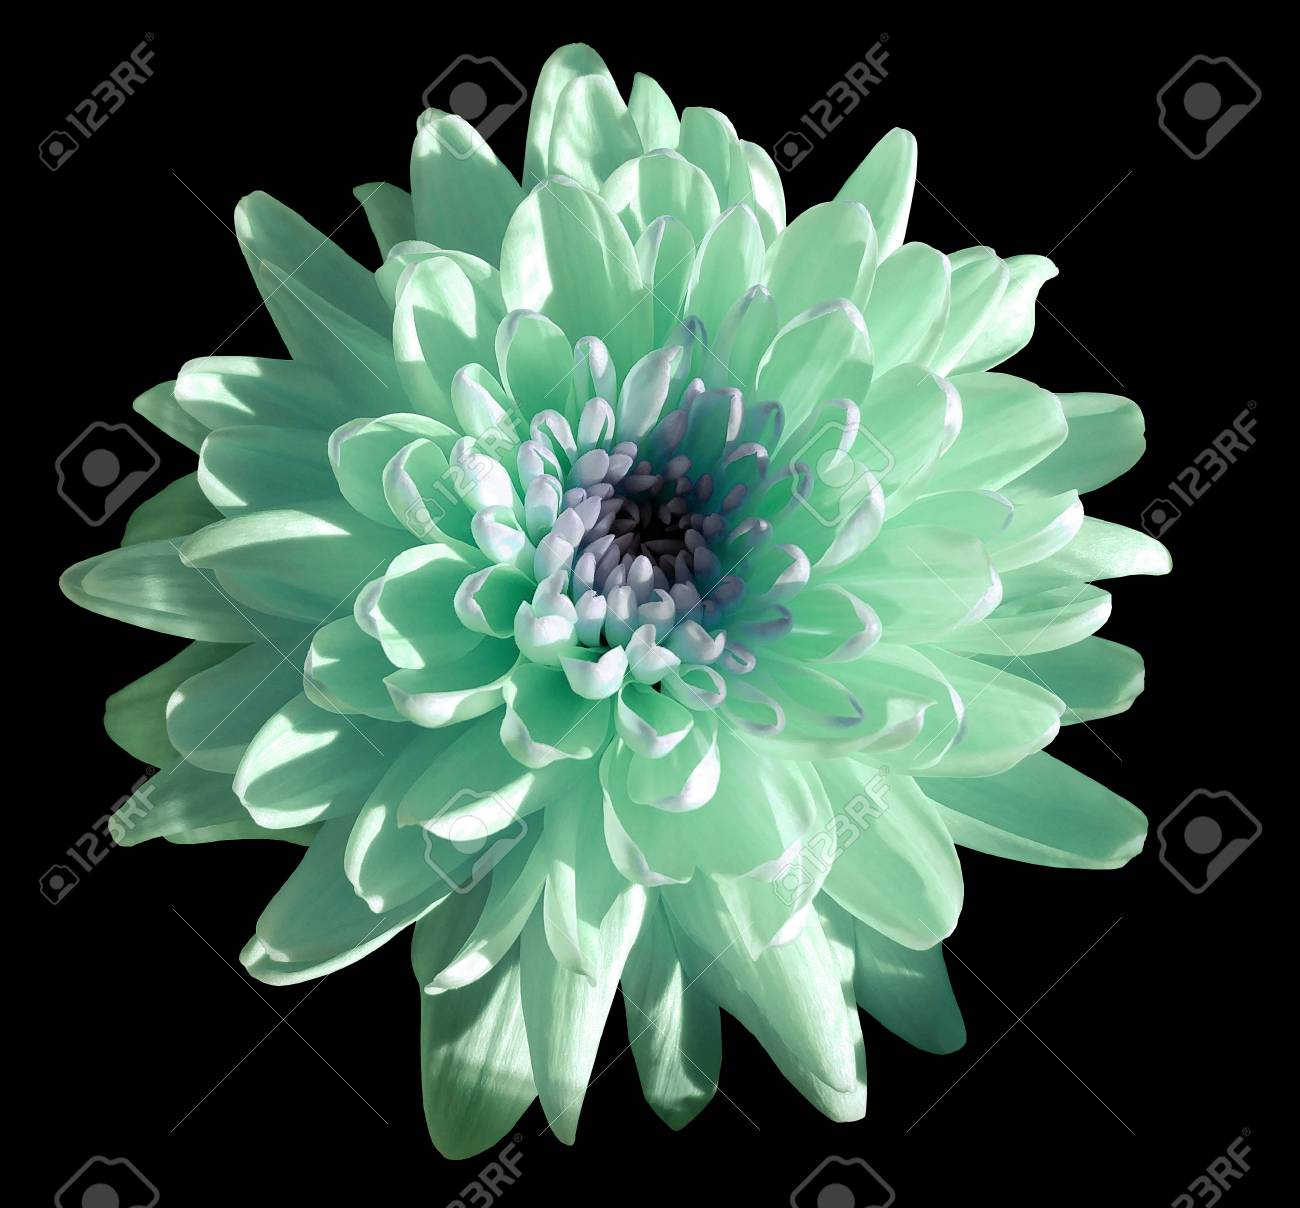 Turquoise blue white flower chrysanthemum garden flower black turquoise blue white flower chrysanthemum garden flower black isolated background with clipping mightylinksfo